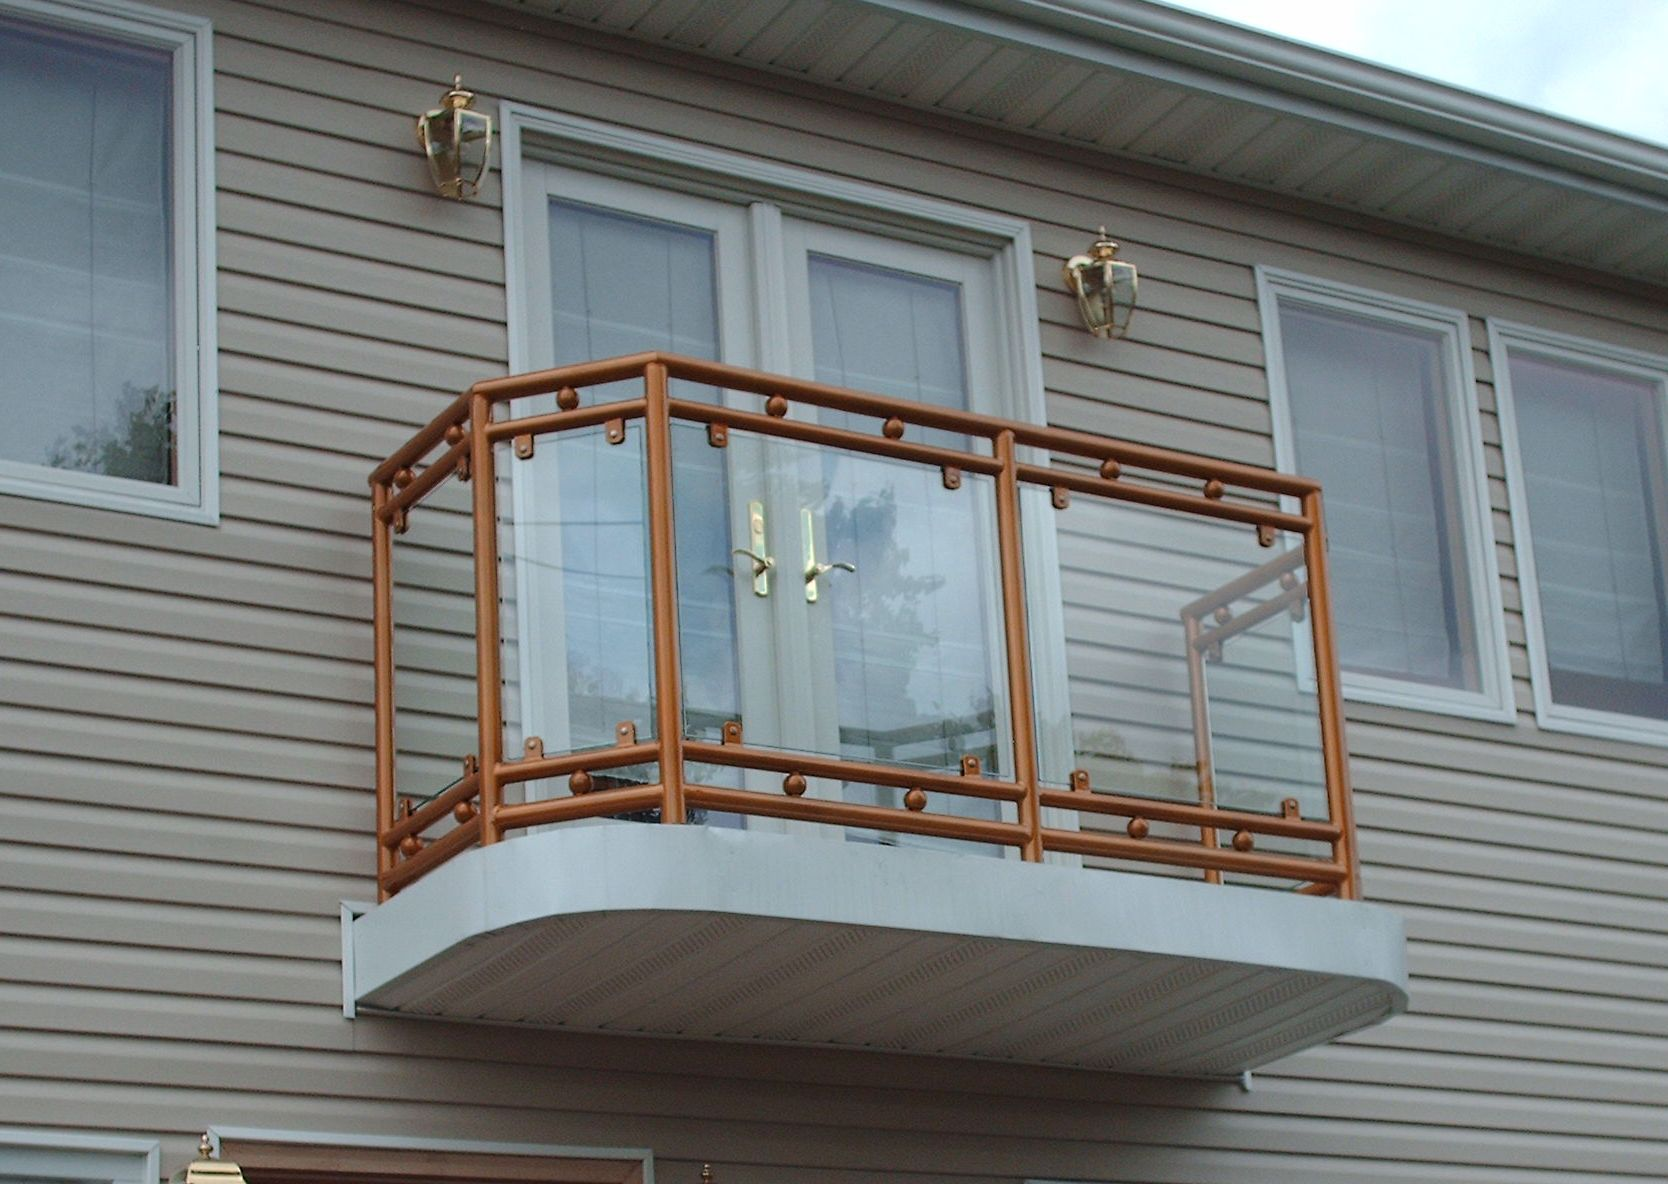 Guardian gate balcony balconies pinterest balcony for 2nd floor balcony designs